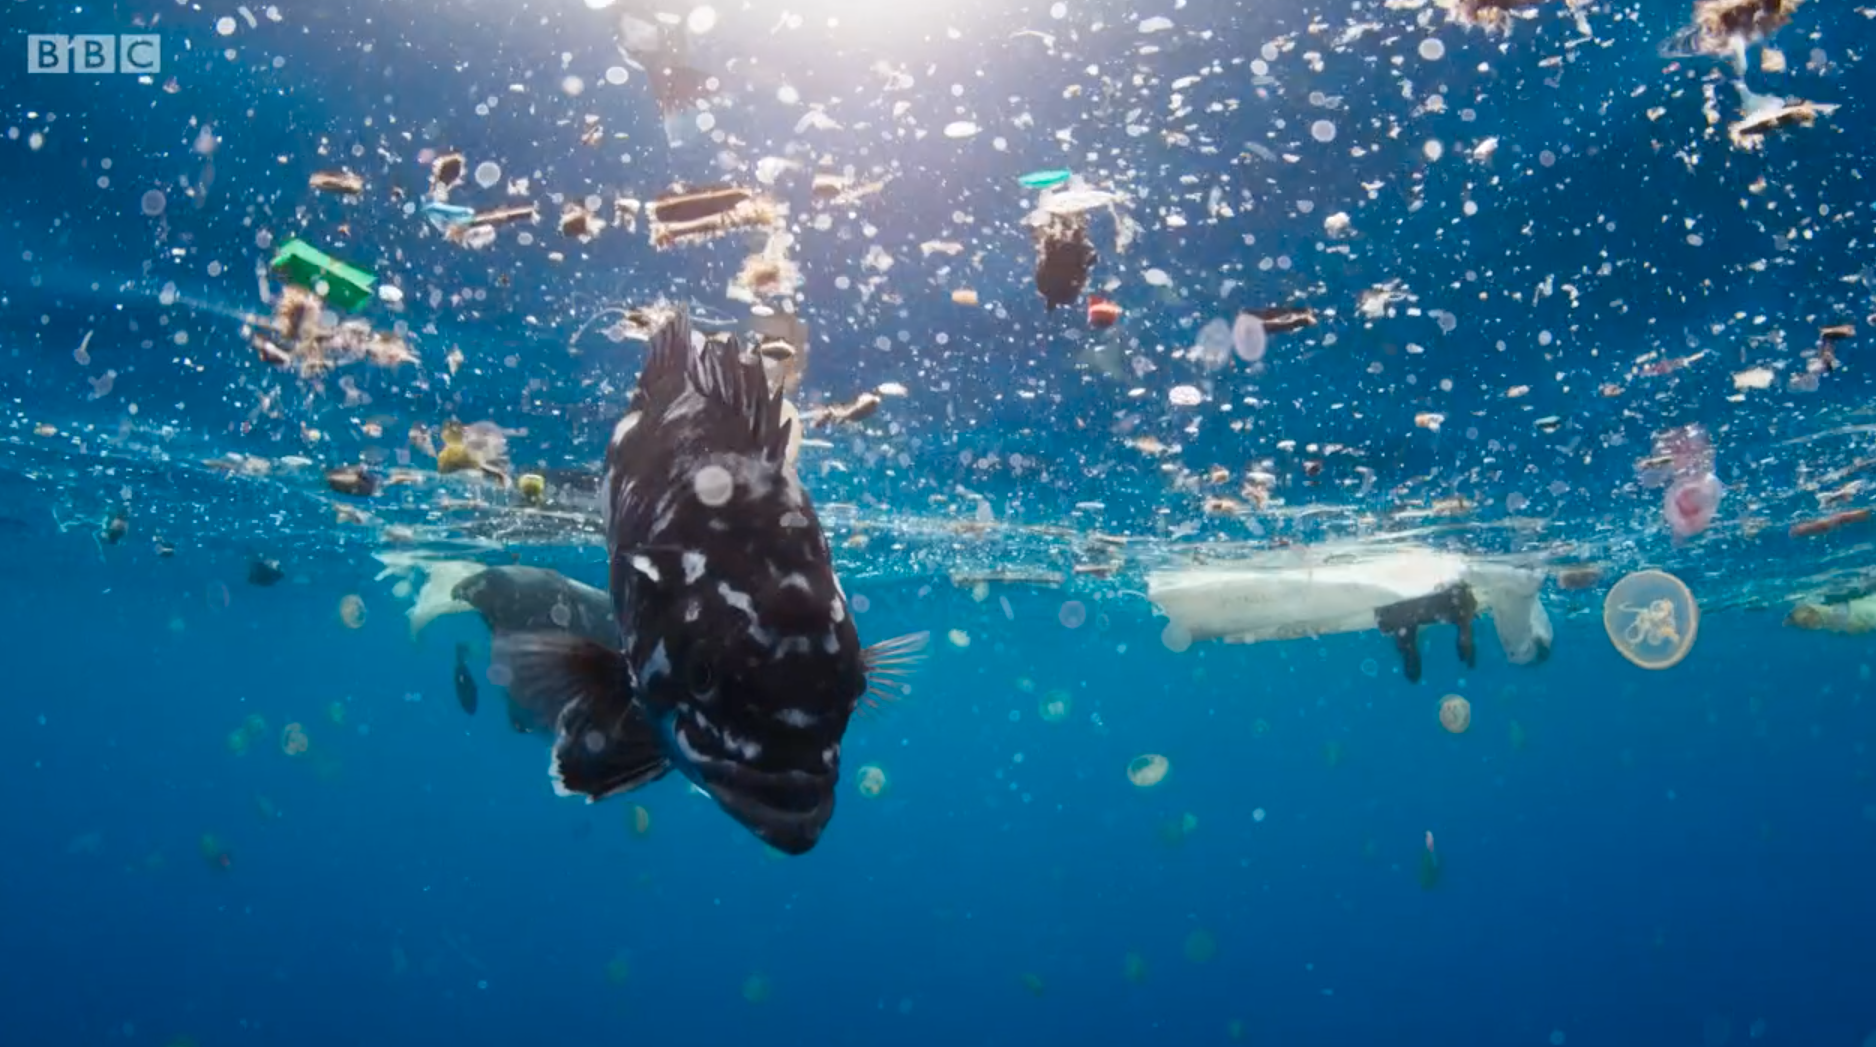 By 2050 The Ocean Is Expected To Contain More Plastic